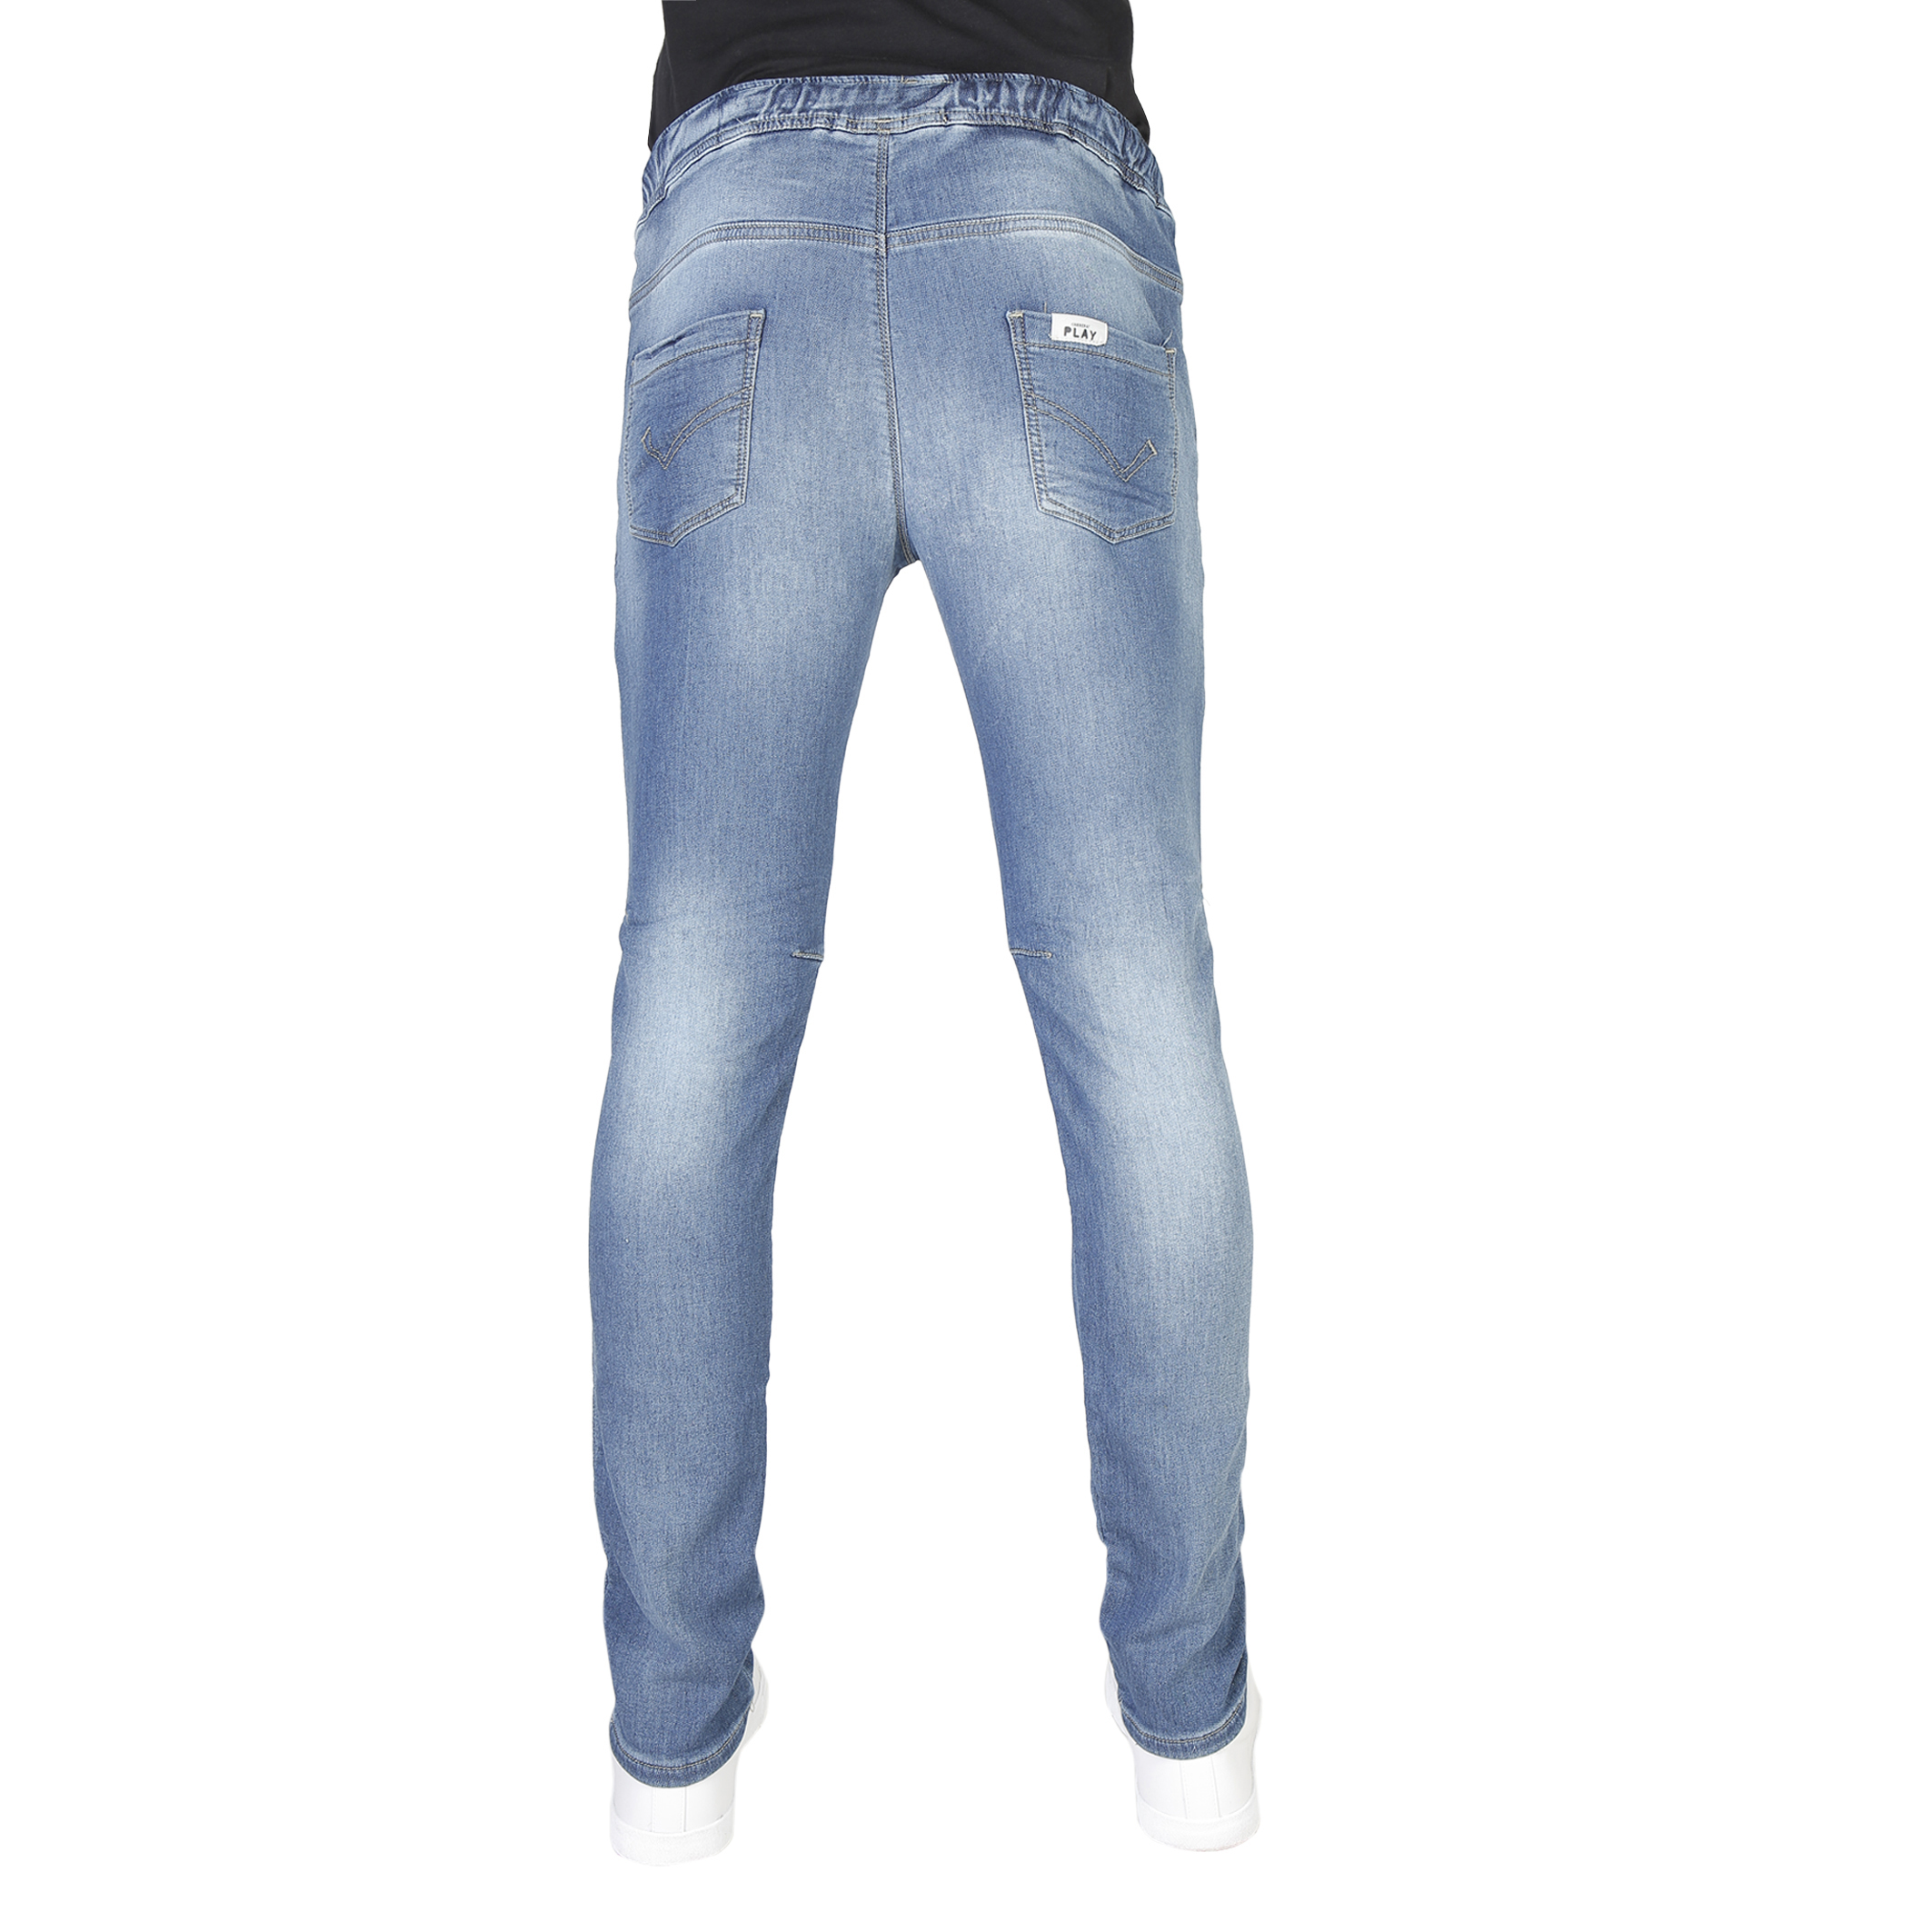 Jeans  Carrera Jeans 0P730N_0985A blue